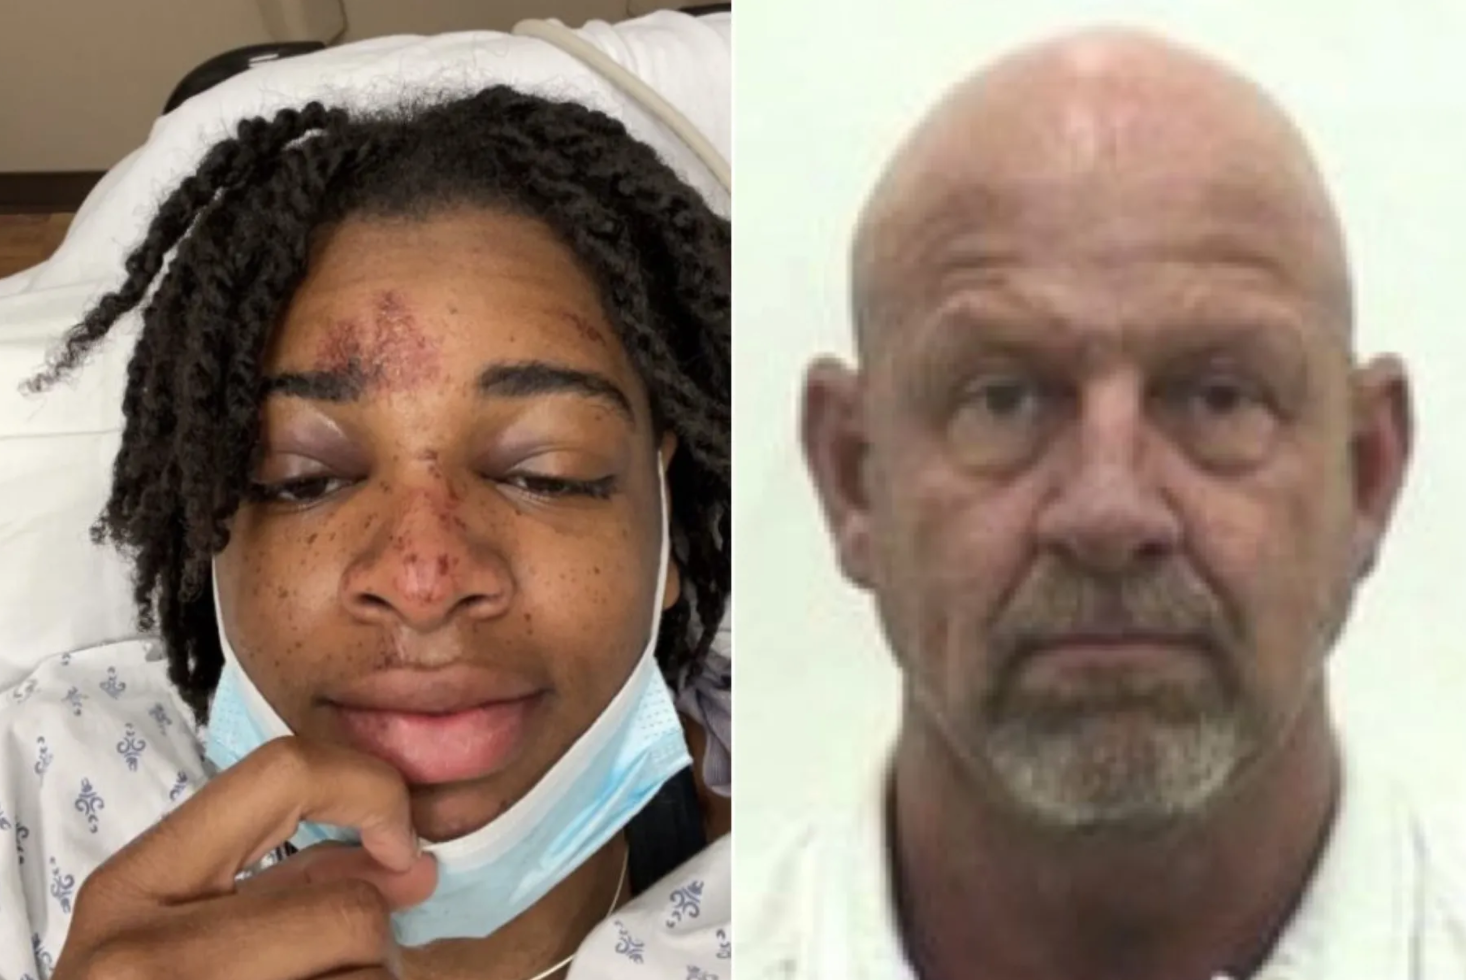 White Bar Owner Arrested After Allegedly Attacking A Black Female College Student At His Bar